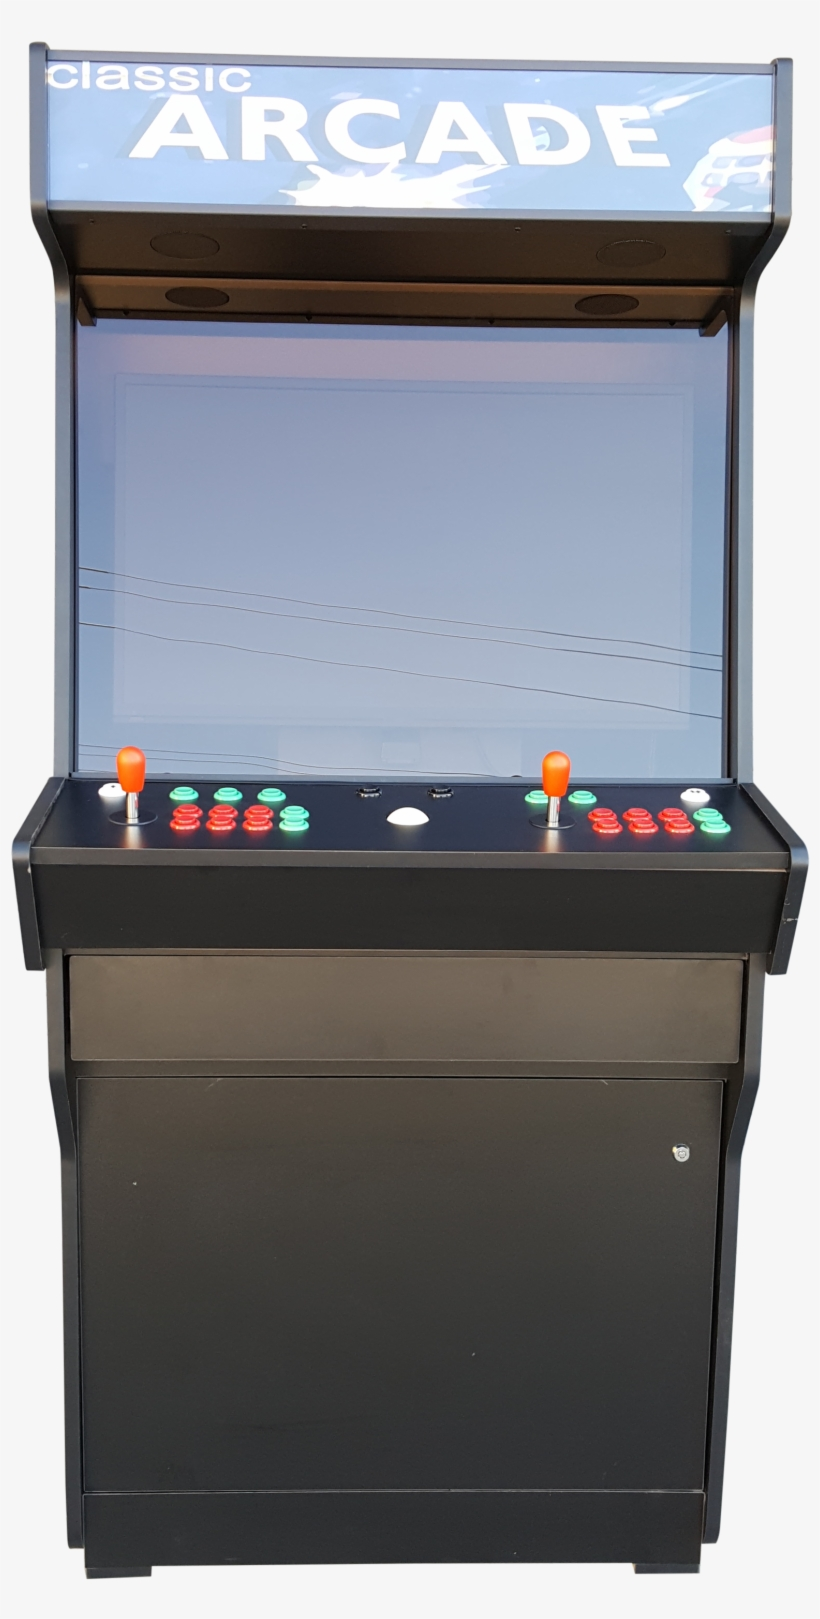 Machine png group romolagarai. Arcade clipart game console